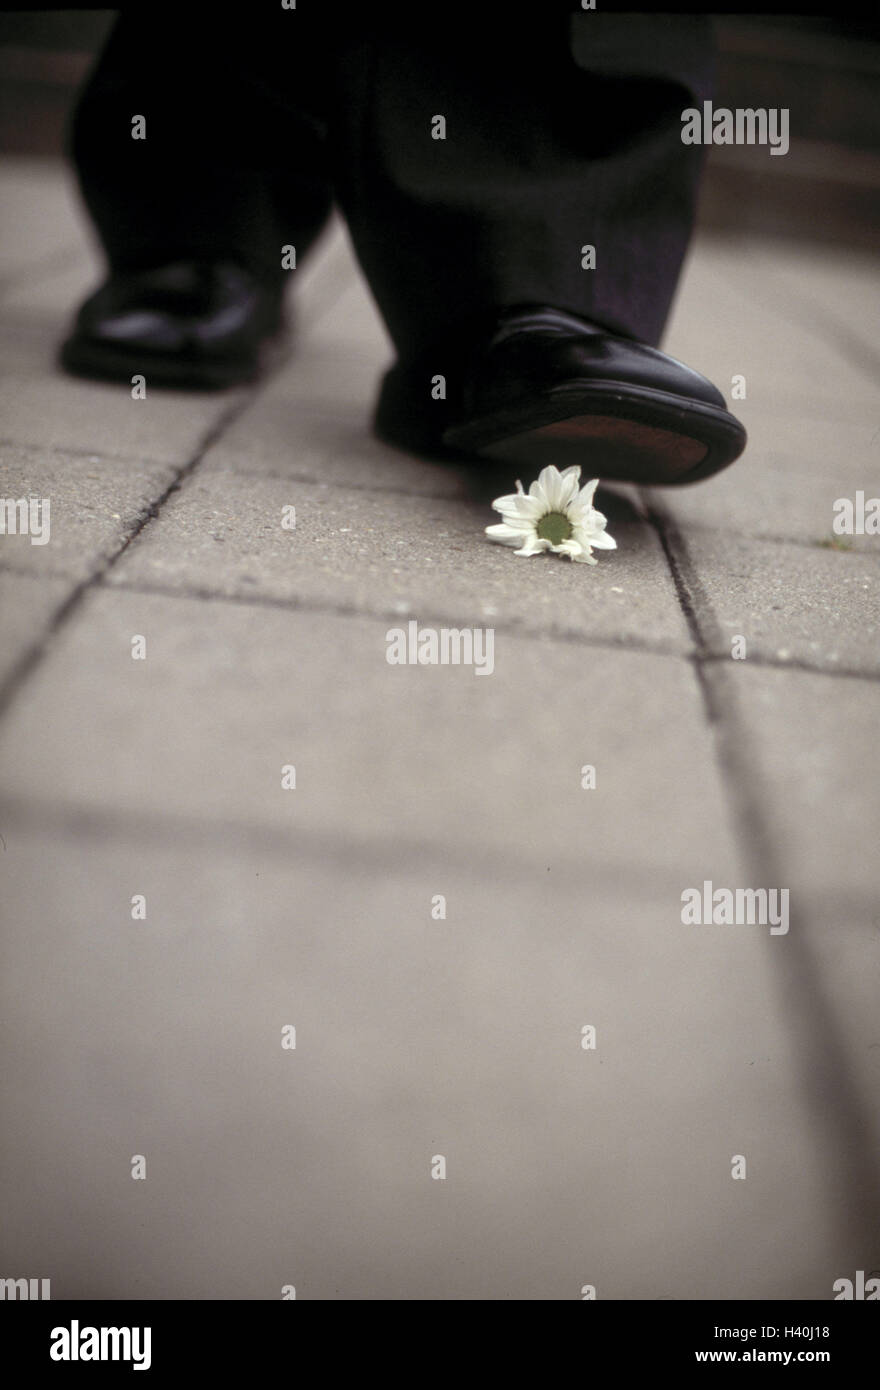 Manager, detail, shoe, blossom, crush, man, Lord's shoe, leather ball shoe, business, toughly, unscrupulousness, - Stock Image